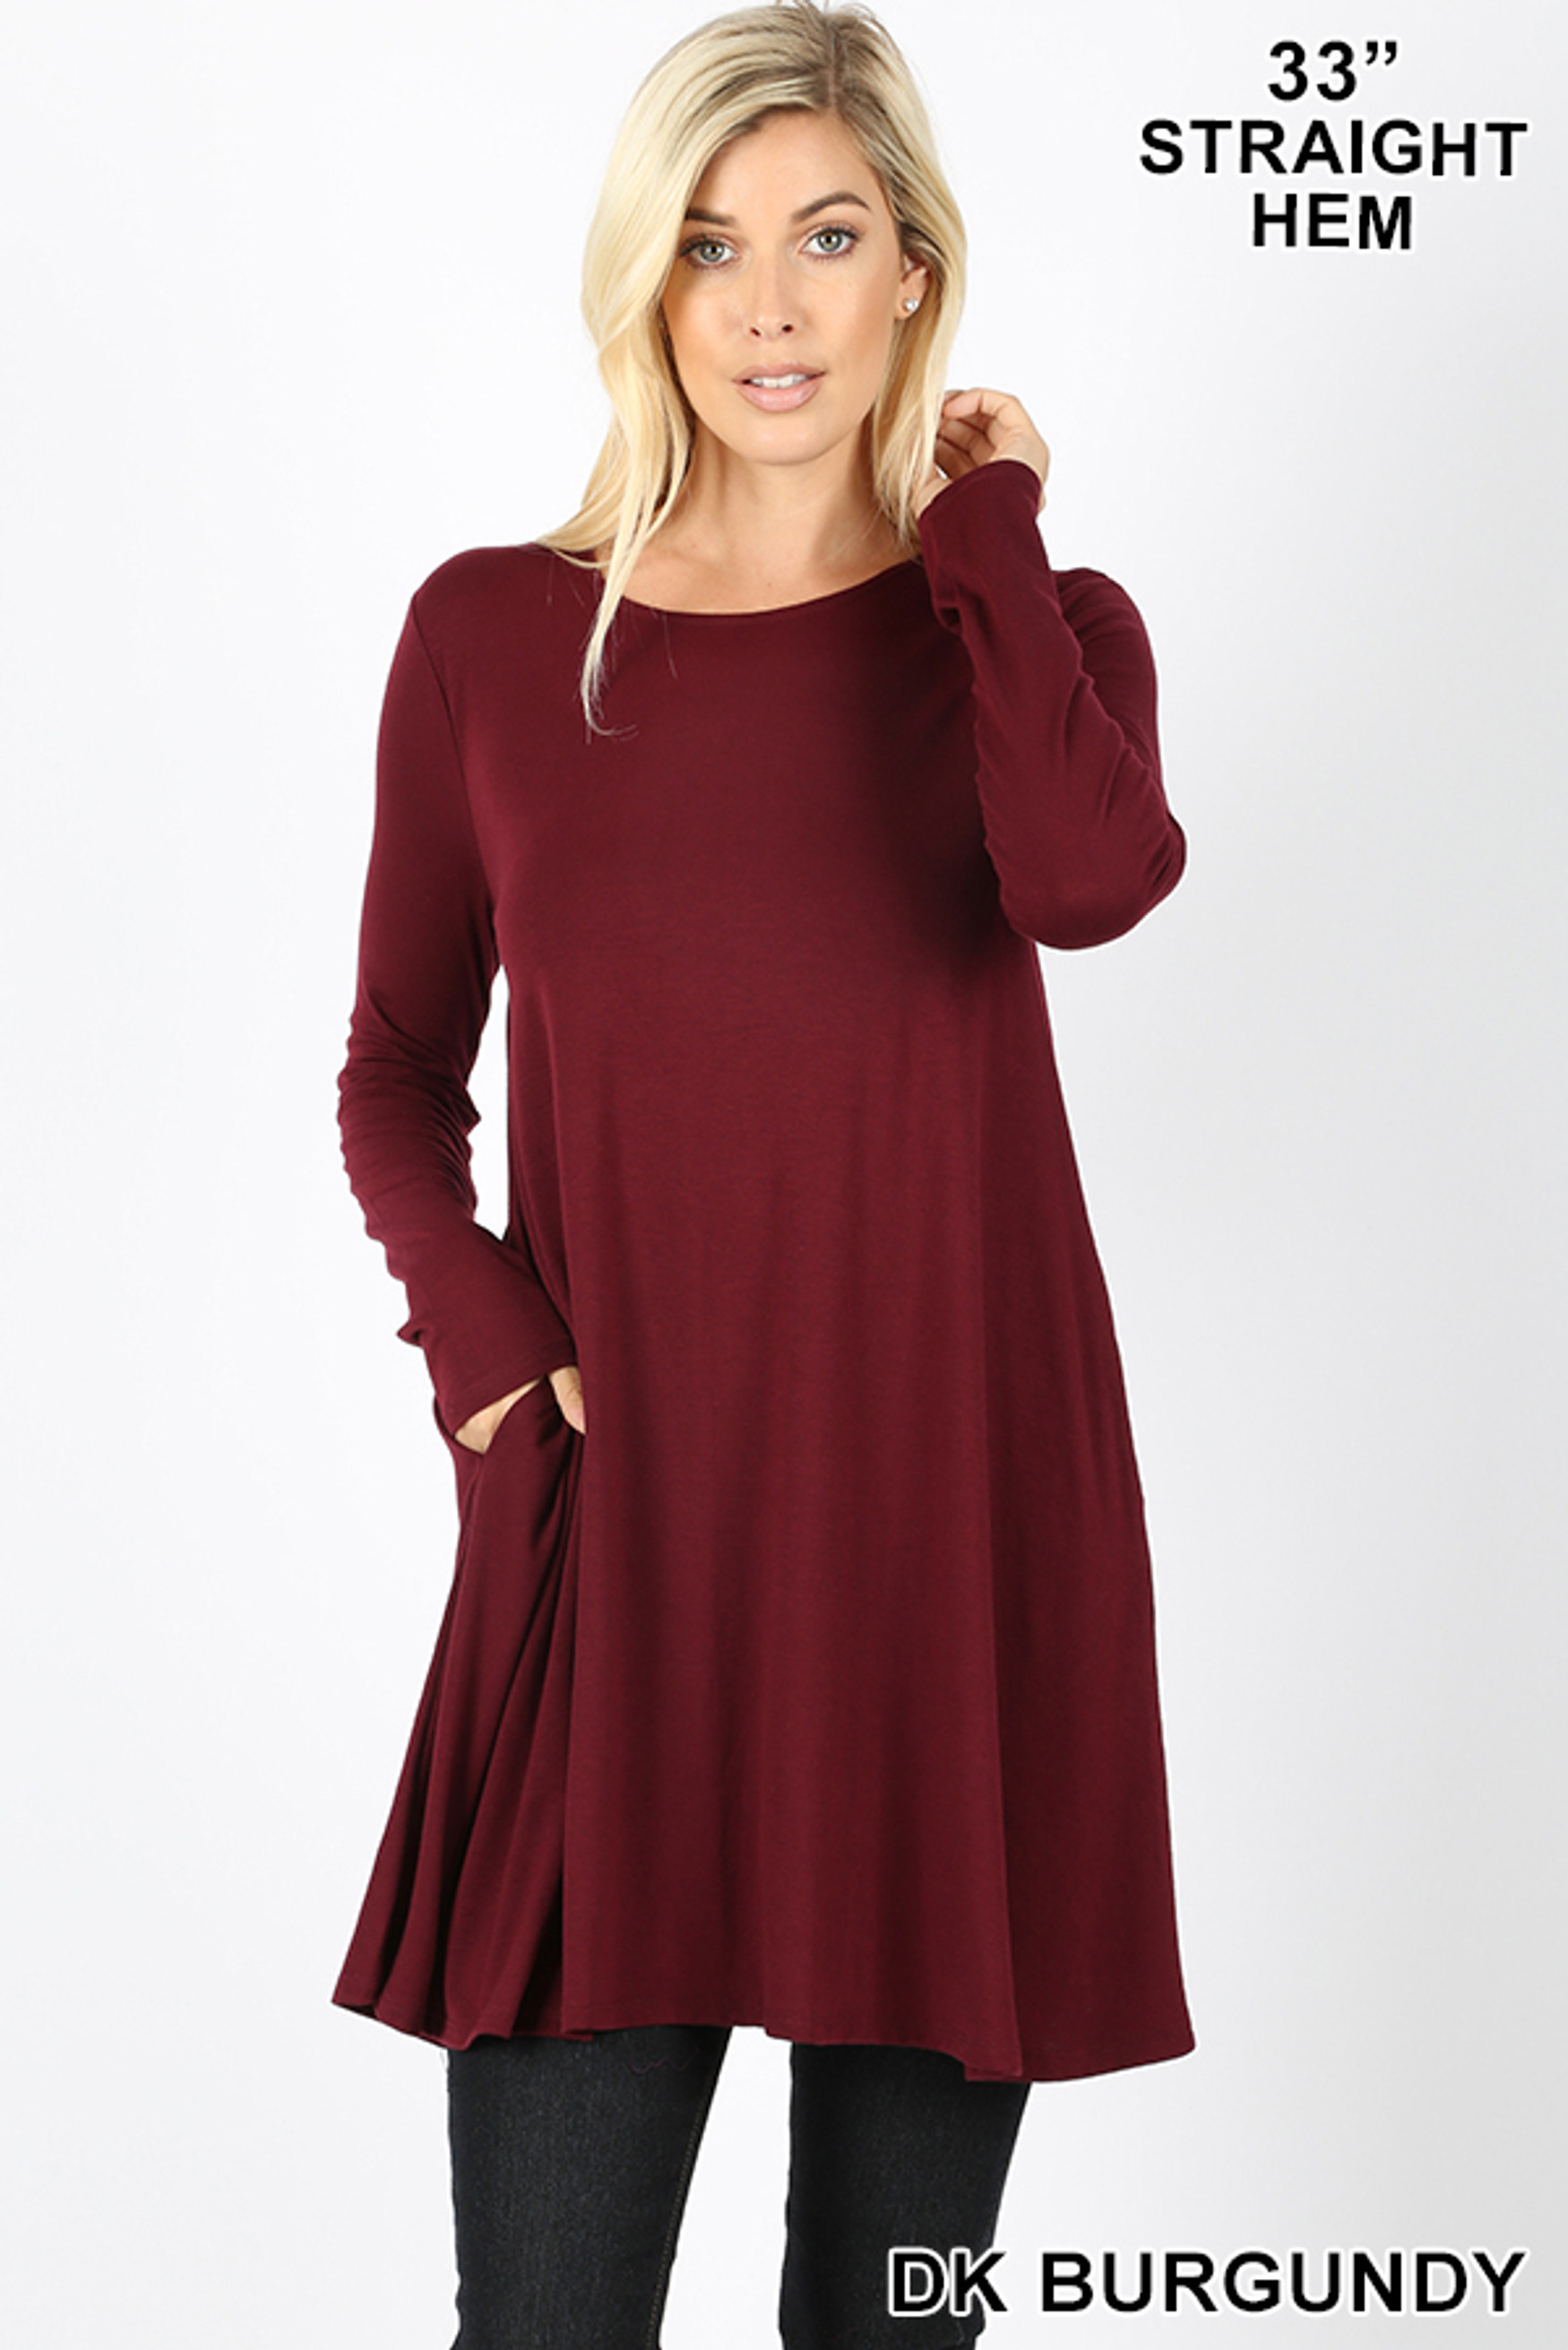 Front of Dk Burgundy Long Sleeve Swing Tunic with Pockets